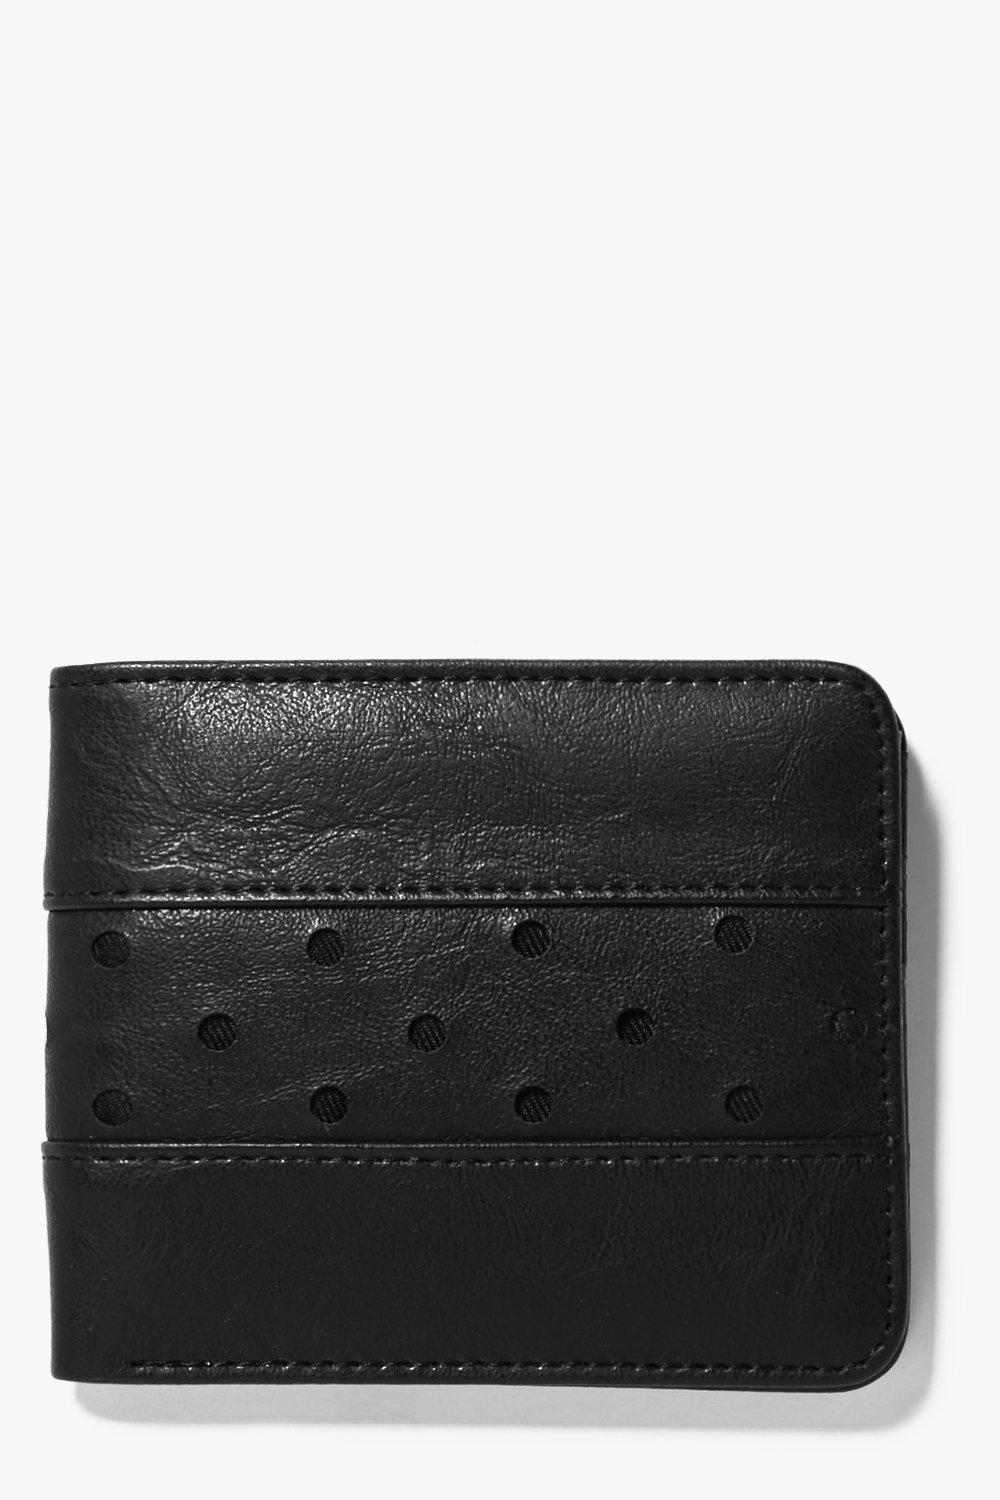 Perforated BiFold Wallet - black - PU Perforated B